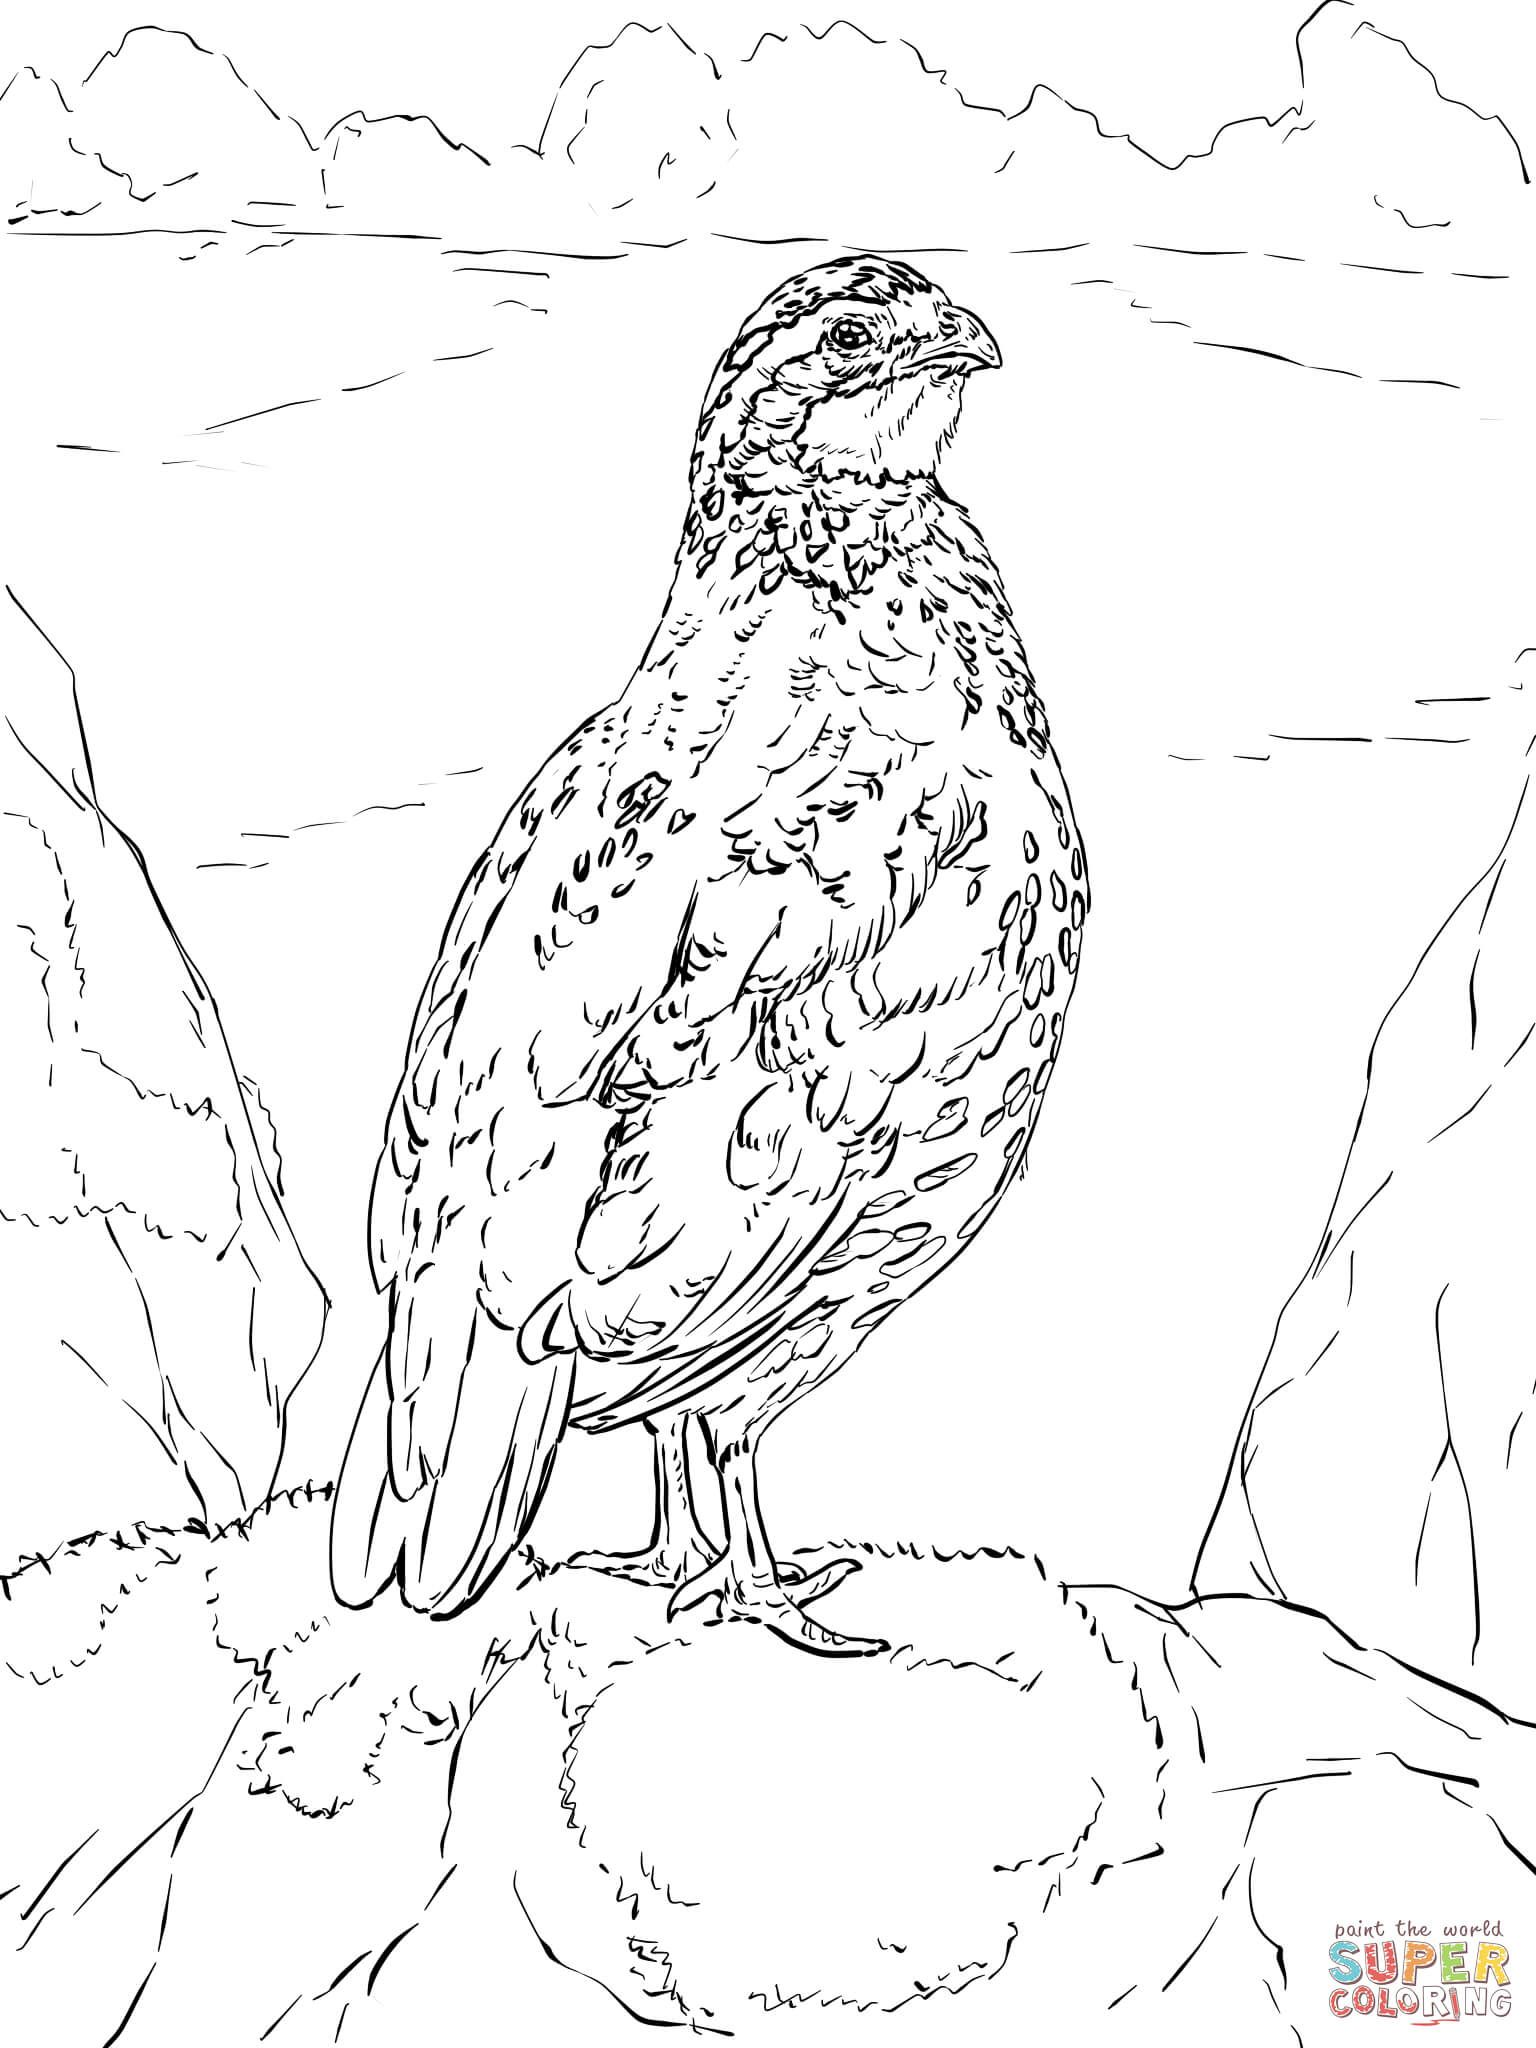 Grab Your Fresh Coloring Pages Quail Download Https Gethighit Com Fresh Coloring Pages Quail Down Coloring Pages Letter A Coloring Pages Printable Coloring